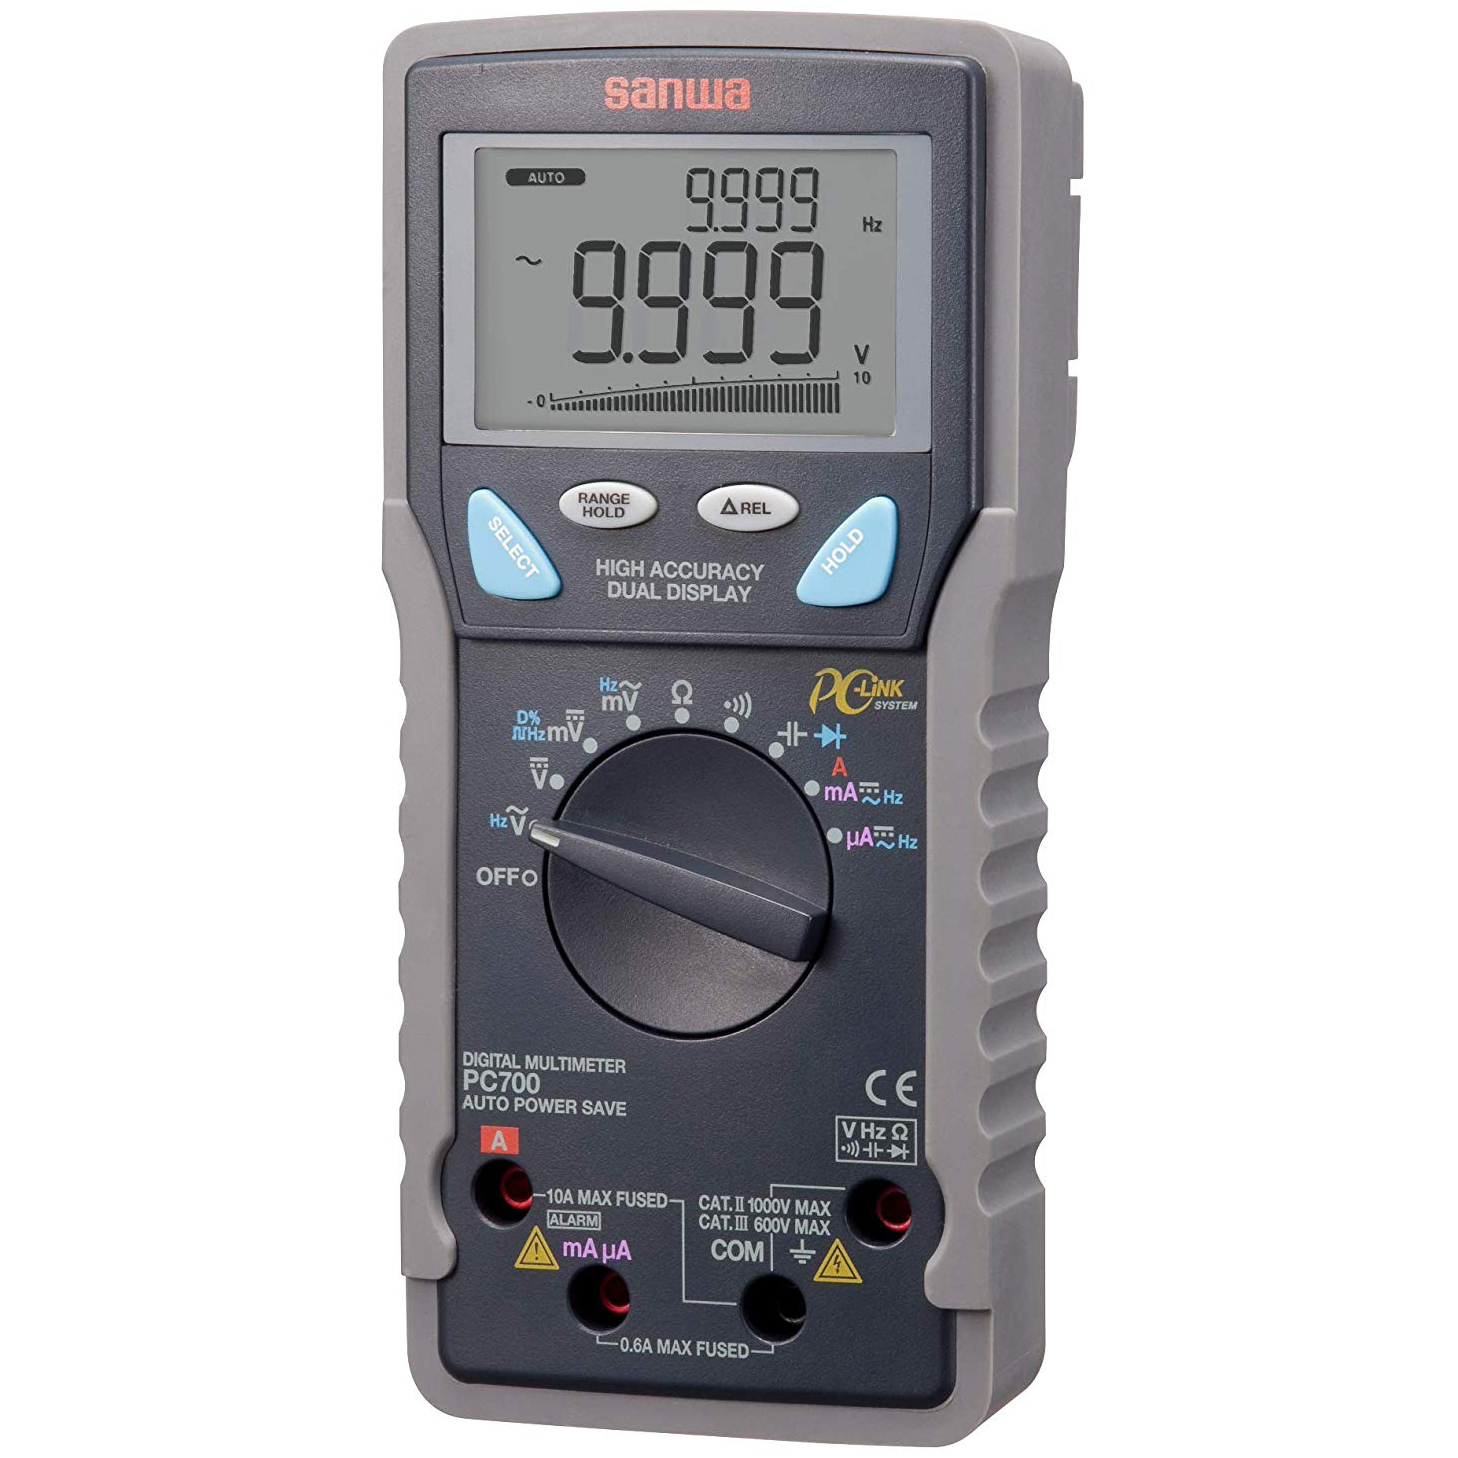 FMUSER SANWA PC700 Advanced Intelligent Digital Multimeter Vollüberlastungsschutz für die PC-Kommunikation